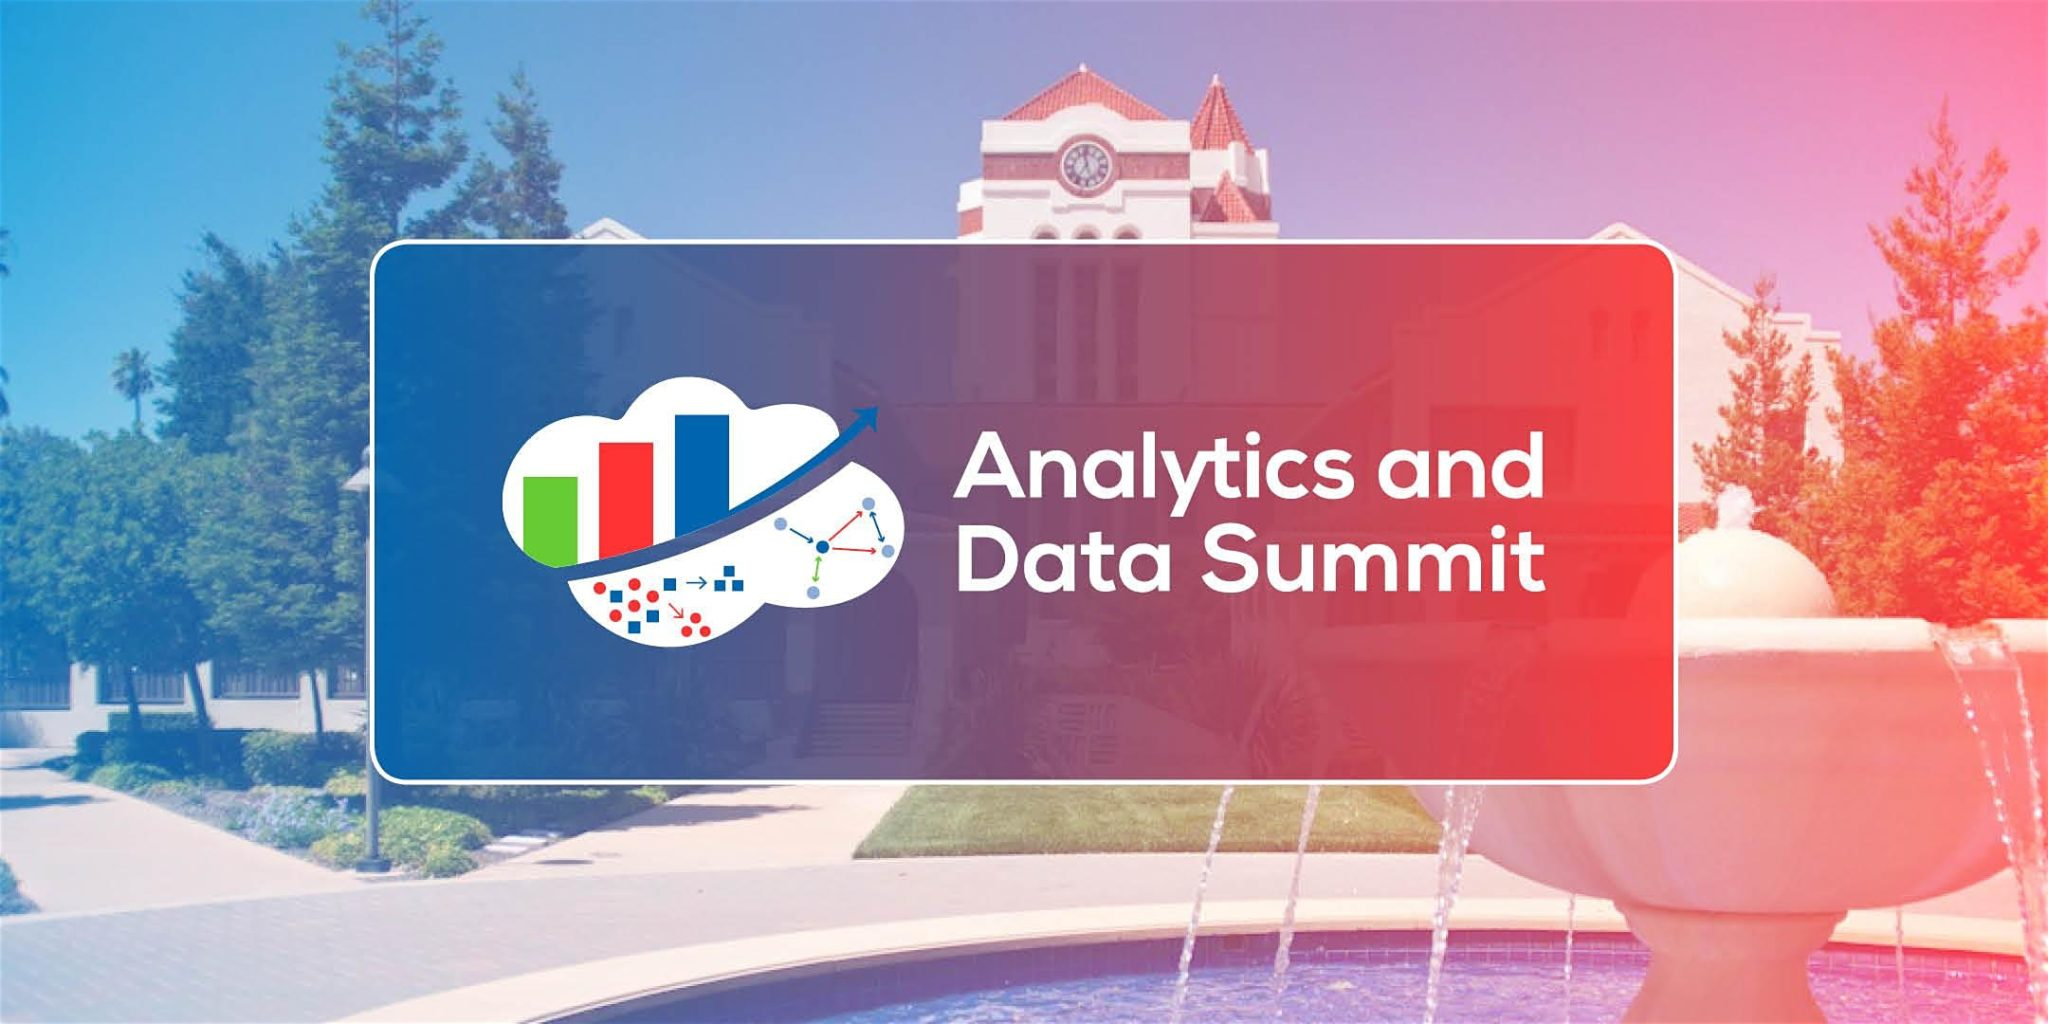 analytics-and-data-summit-february-25-27-2020-2048x1024